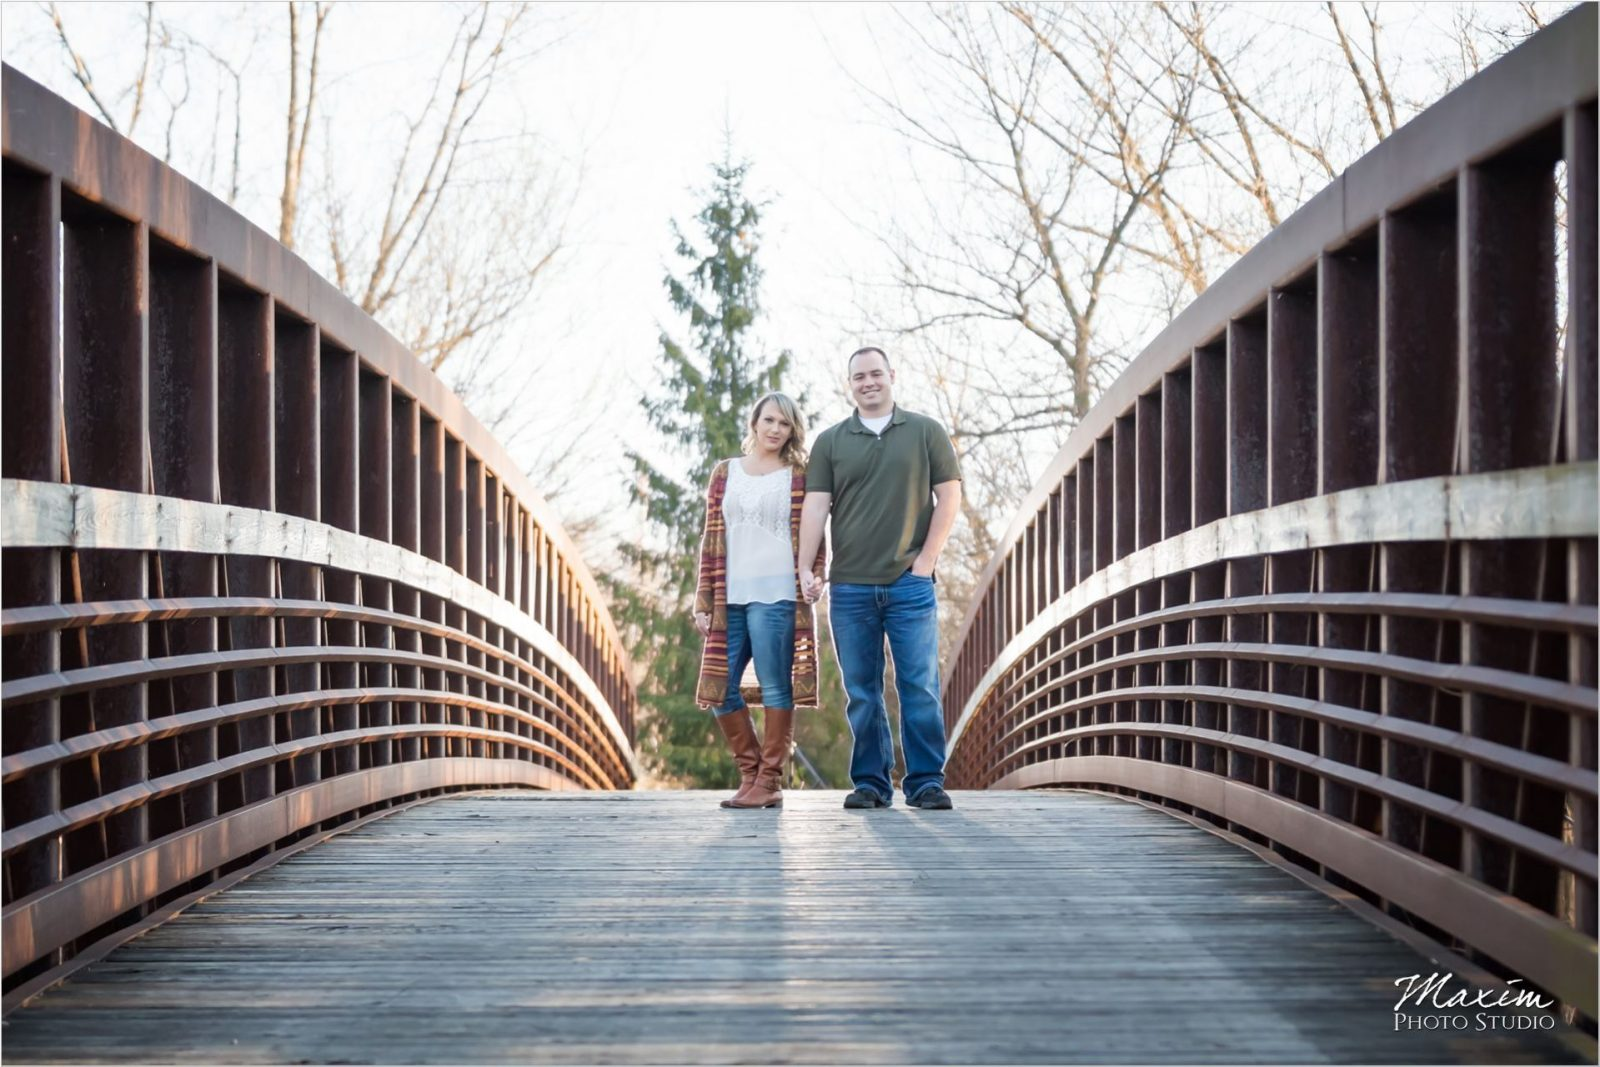 Dayton Wedding Photographers Faurot Park engagement bridge